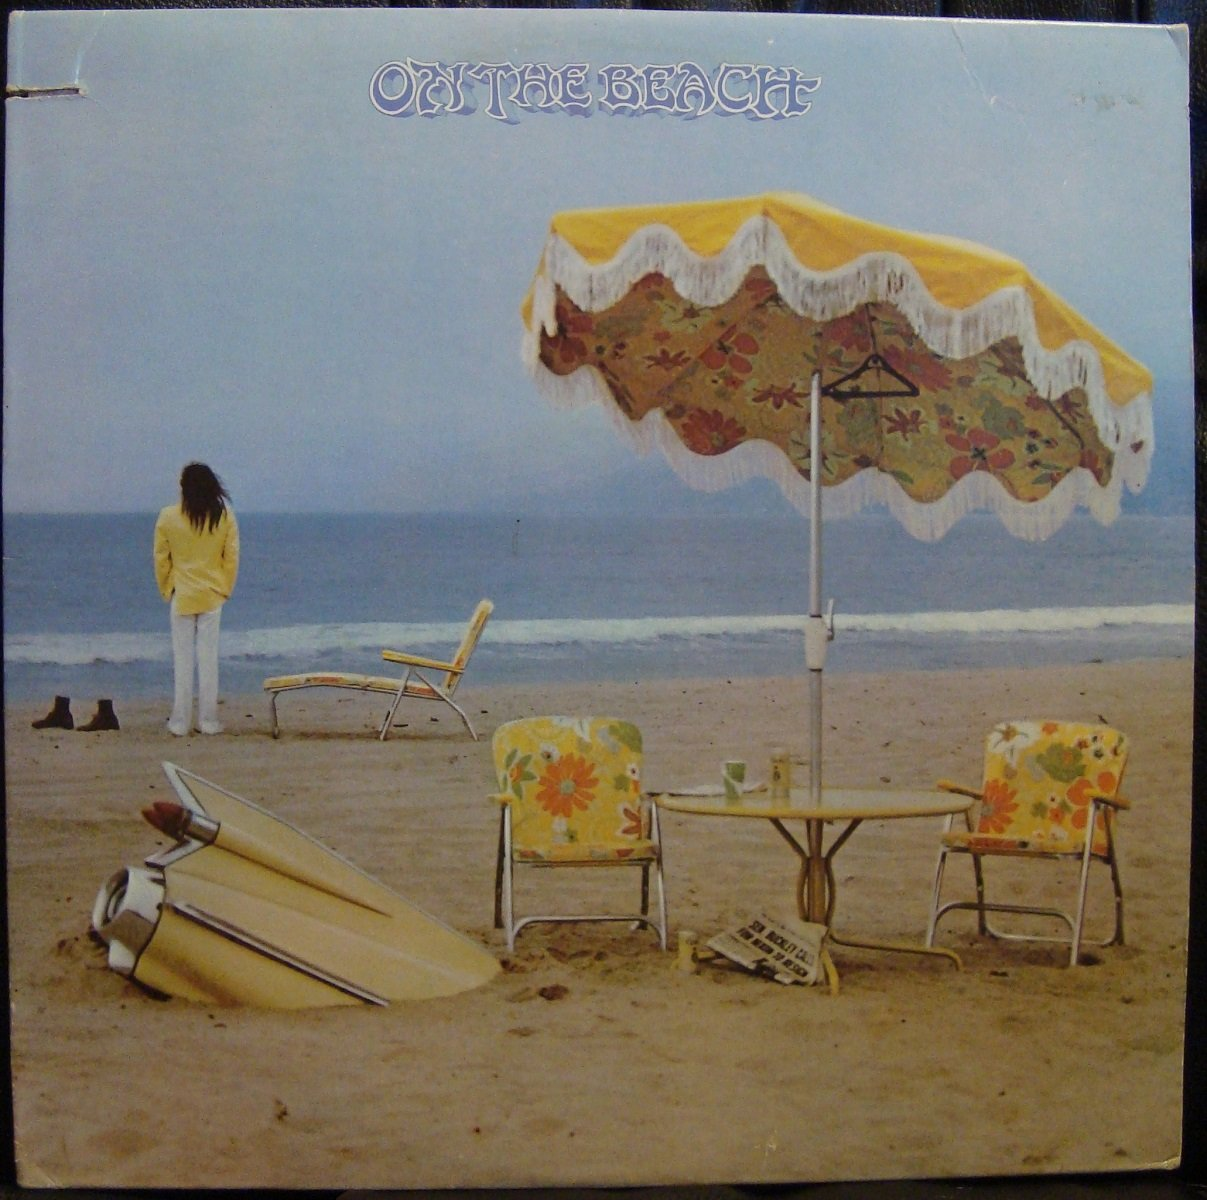 On the beach (1974) / Vinyl record [Vinyl-LP]